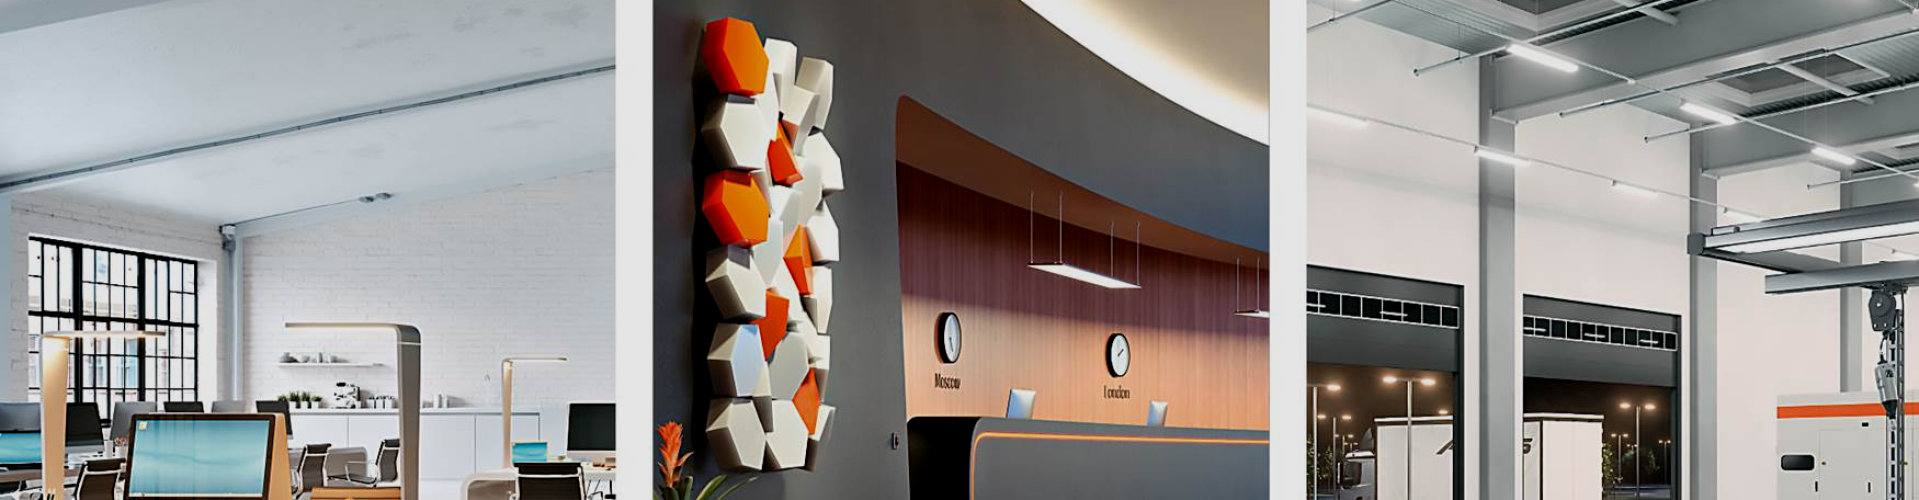 As multifaceted as your luminaires: LED system solutions from OSRAM